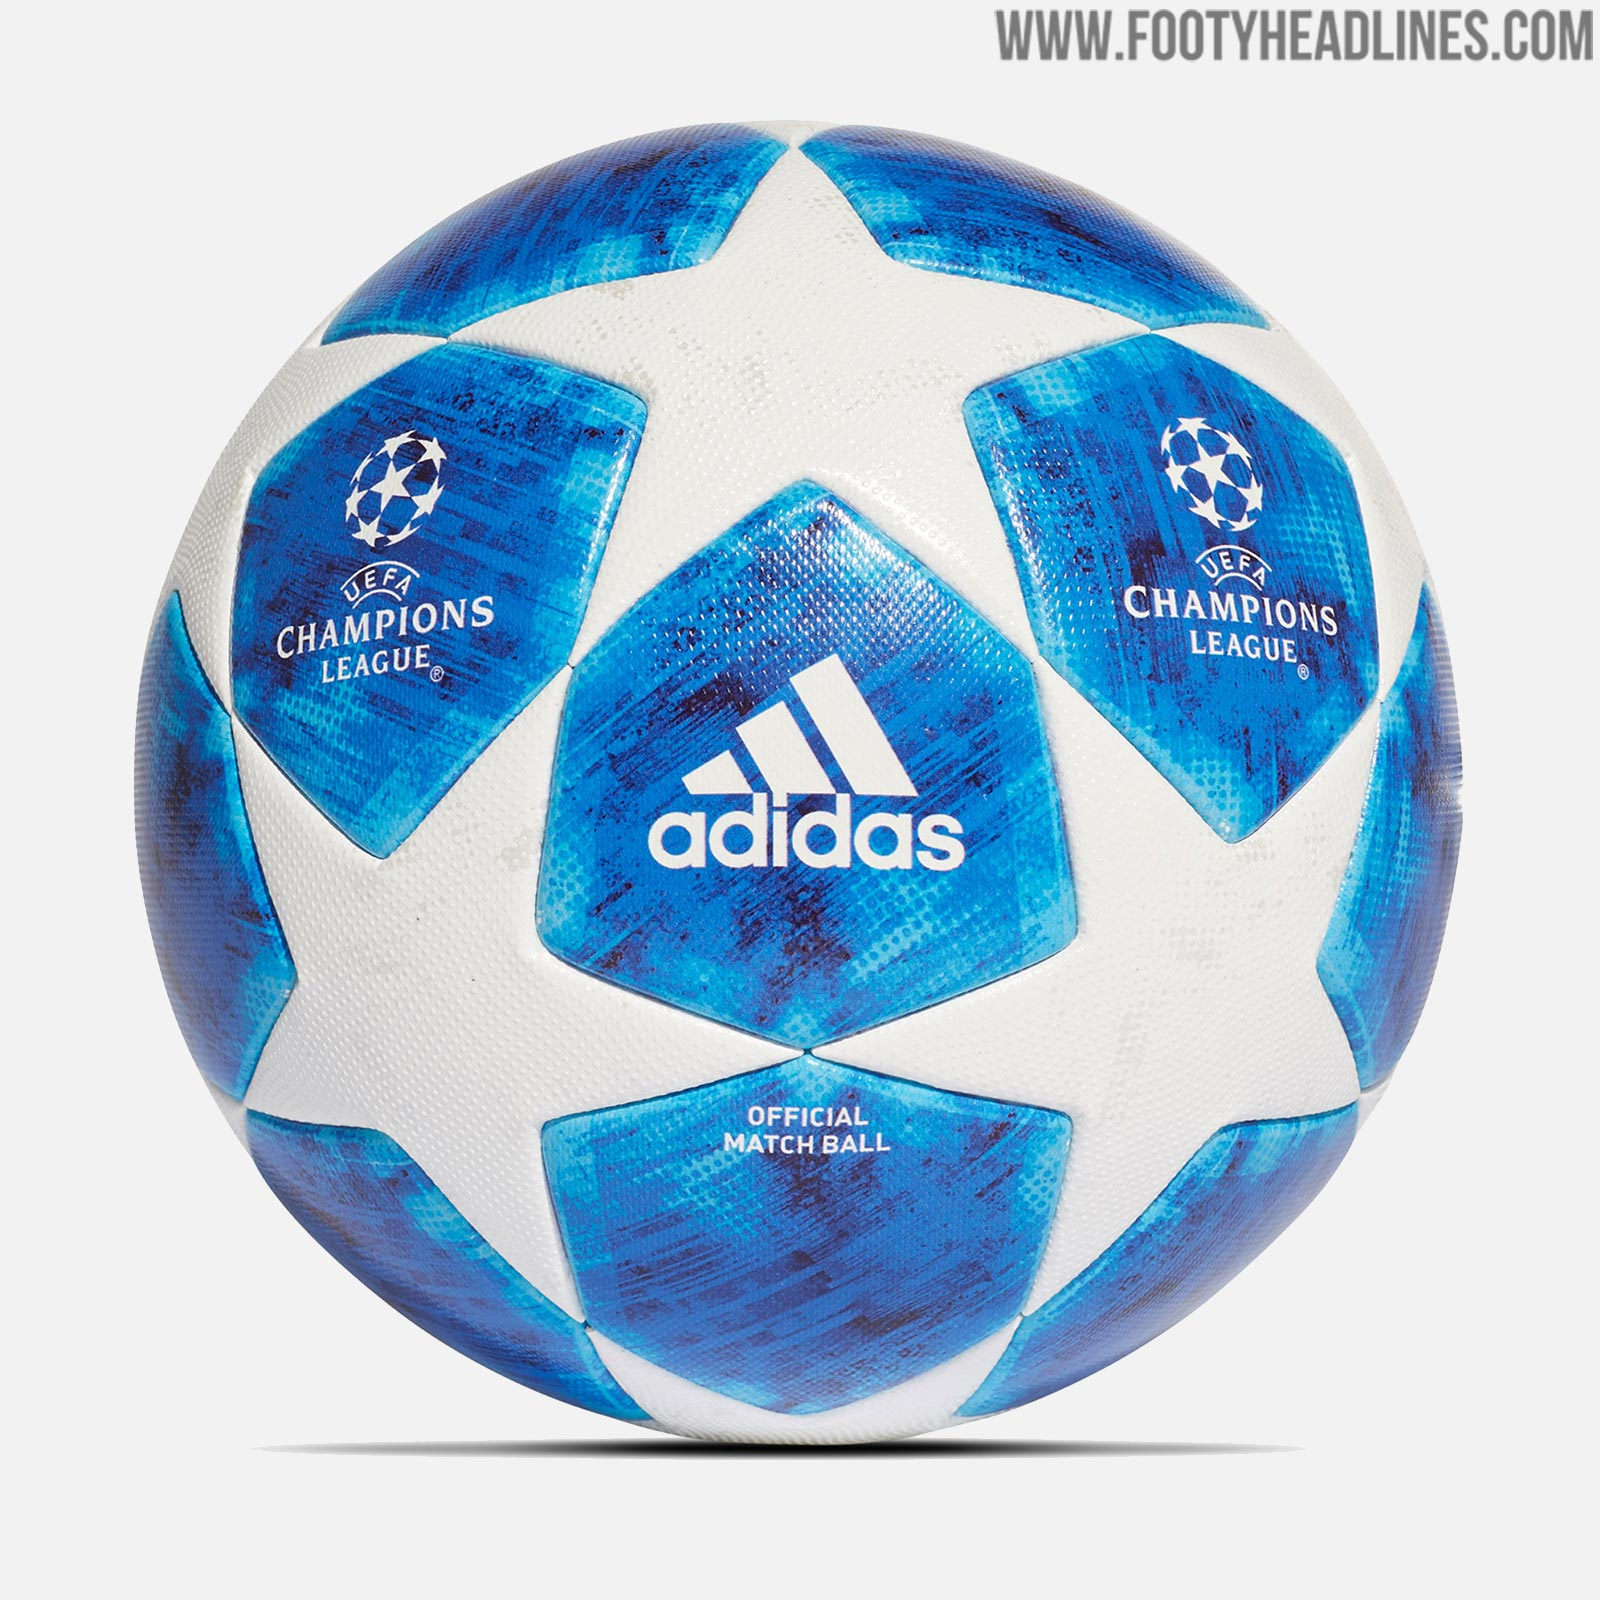 9+ Champions League Ball